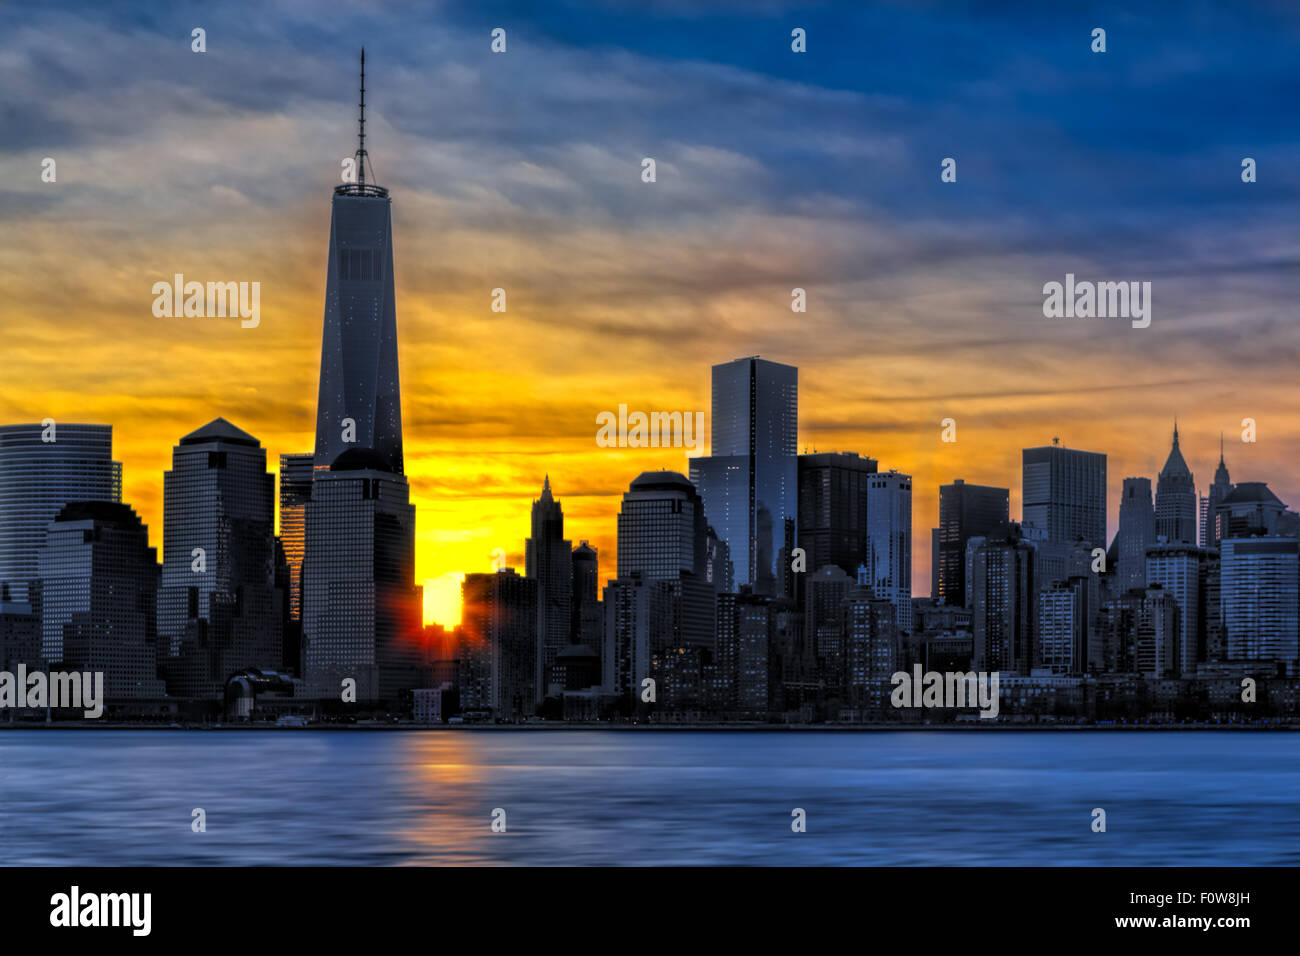 Wtc Sunrise >> Sunrise At One World Trade Center Freedom Tower In The Lower Stock